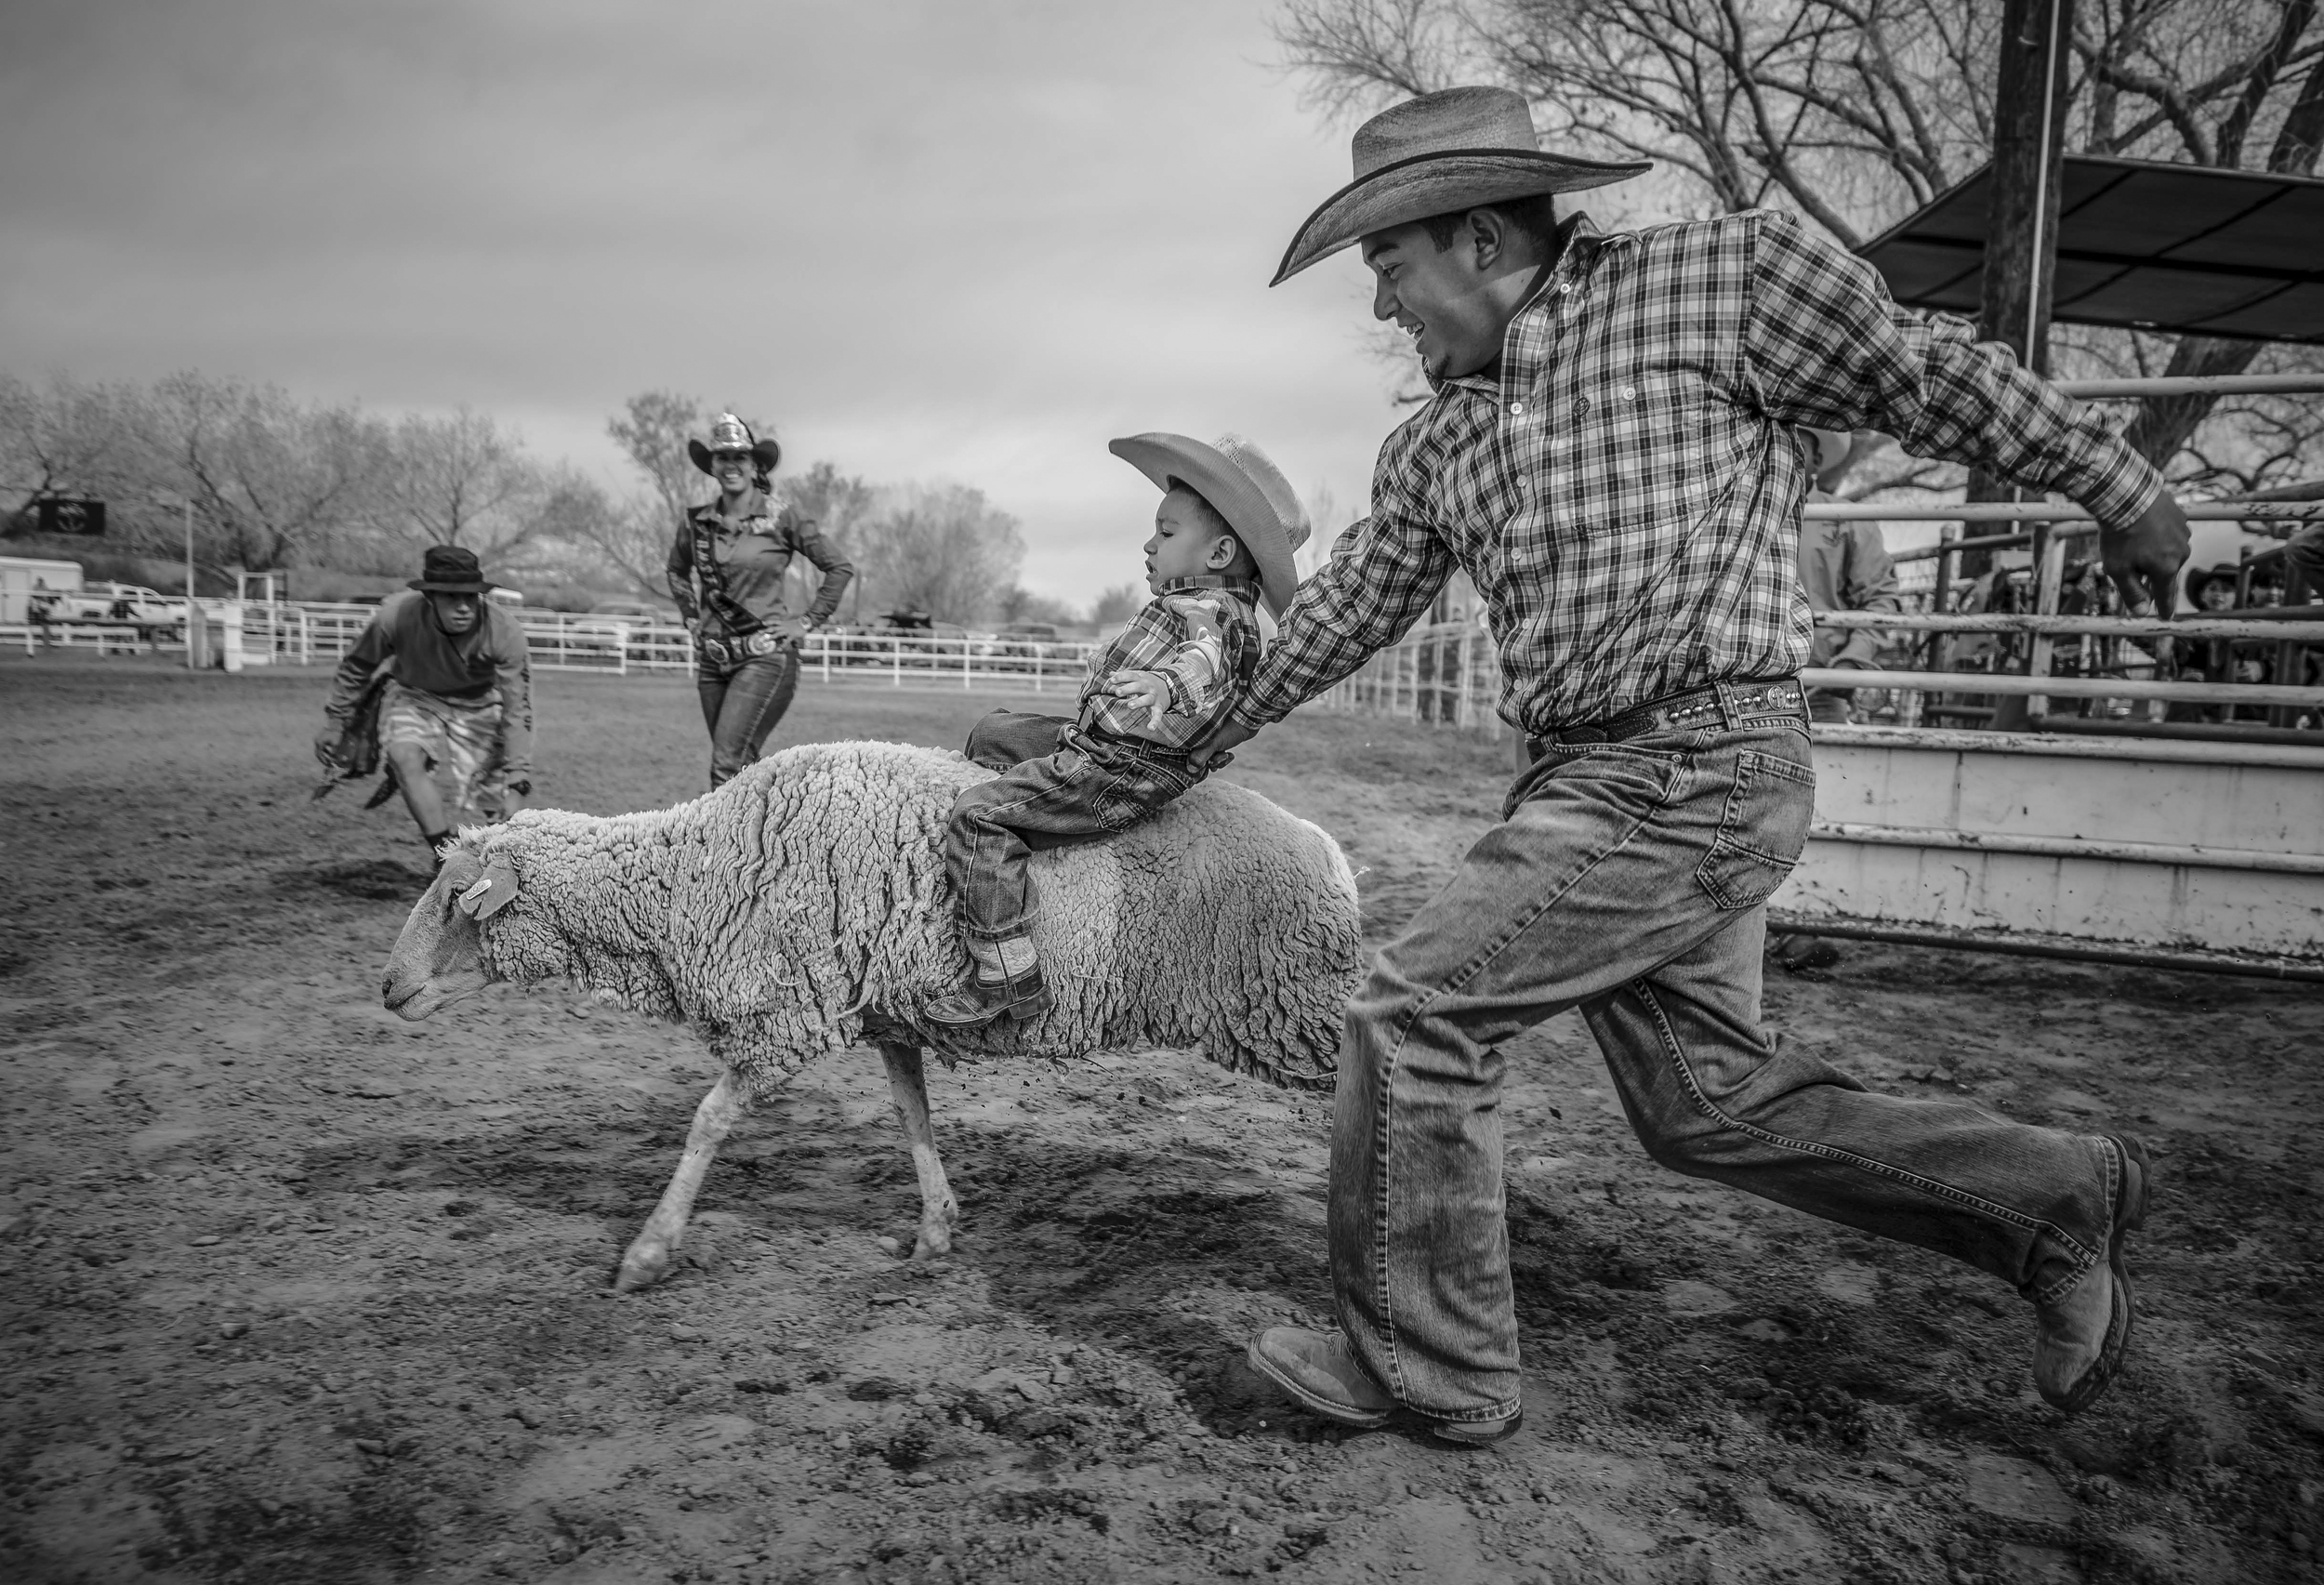 Antonio Padilla helps his 2-year-old son Jayden Padilla hang on to a sheep during the mutton-busting contest at Saturday's first Youth Day Rodeo. Mutton busting is a tamed-down version of bull riding for kids 6 and younger, according to a spokeswoman. (Roberto E. Rosales/Albuquerque Journal)